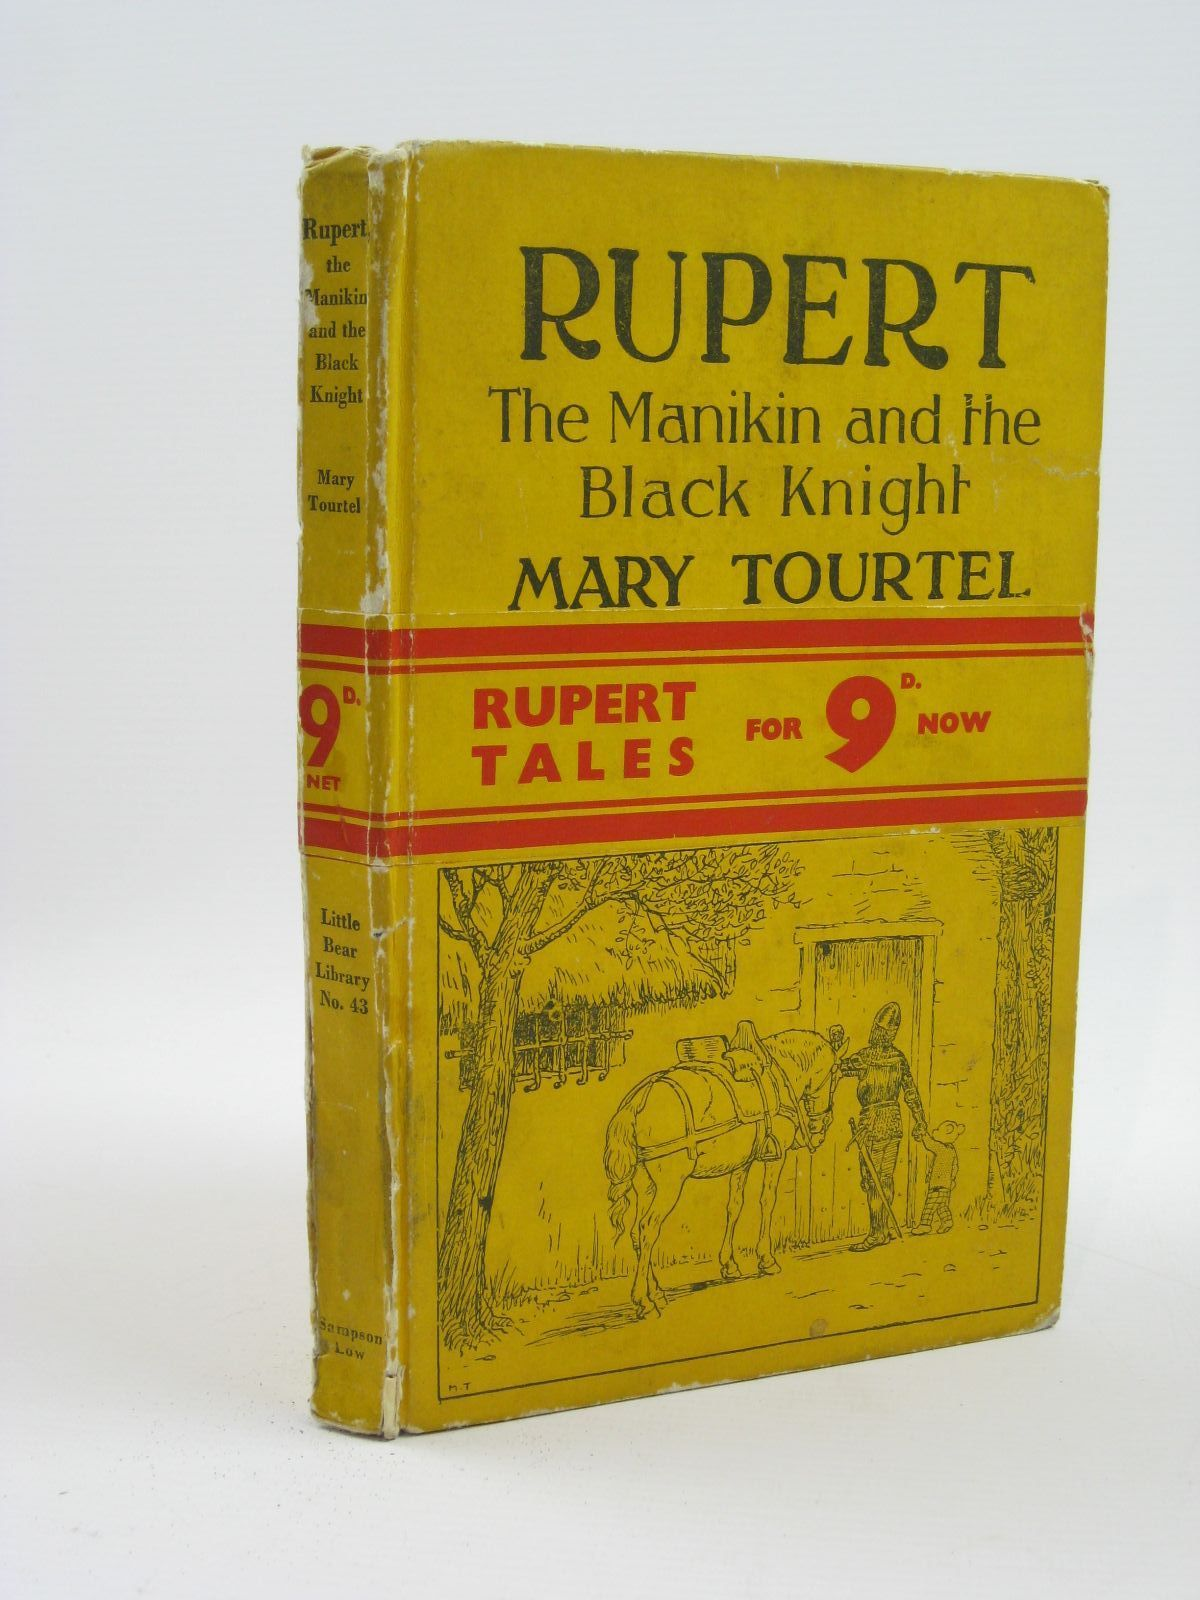 Photo of RUPERT, THE MANIKIN AND THE BLACK KNIGHT - RUPERT LITTLE BEAR LIBRARY No. 43 written by Tourtel, Mary illustrated by Tourtel, Mary published by Sampson Low, Marston & Co. Ltd. (STOCK CODE: 1316462)  for sale by Stella & Rose's Books